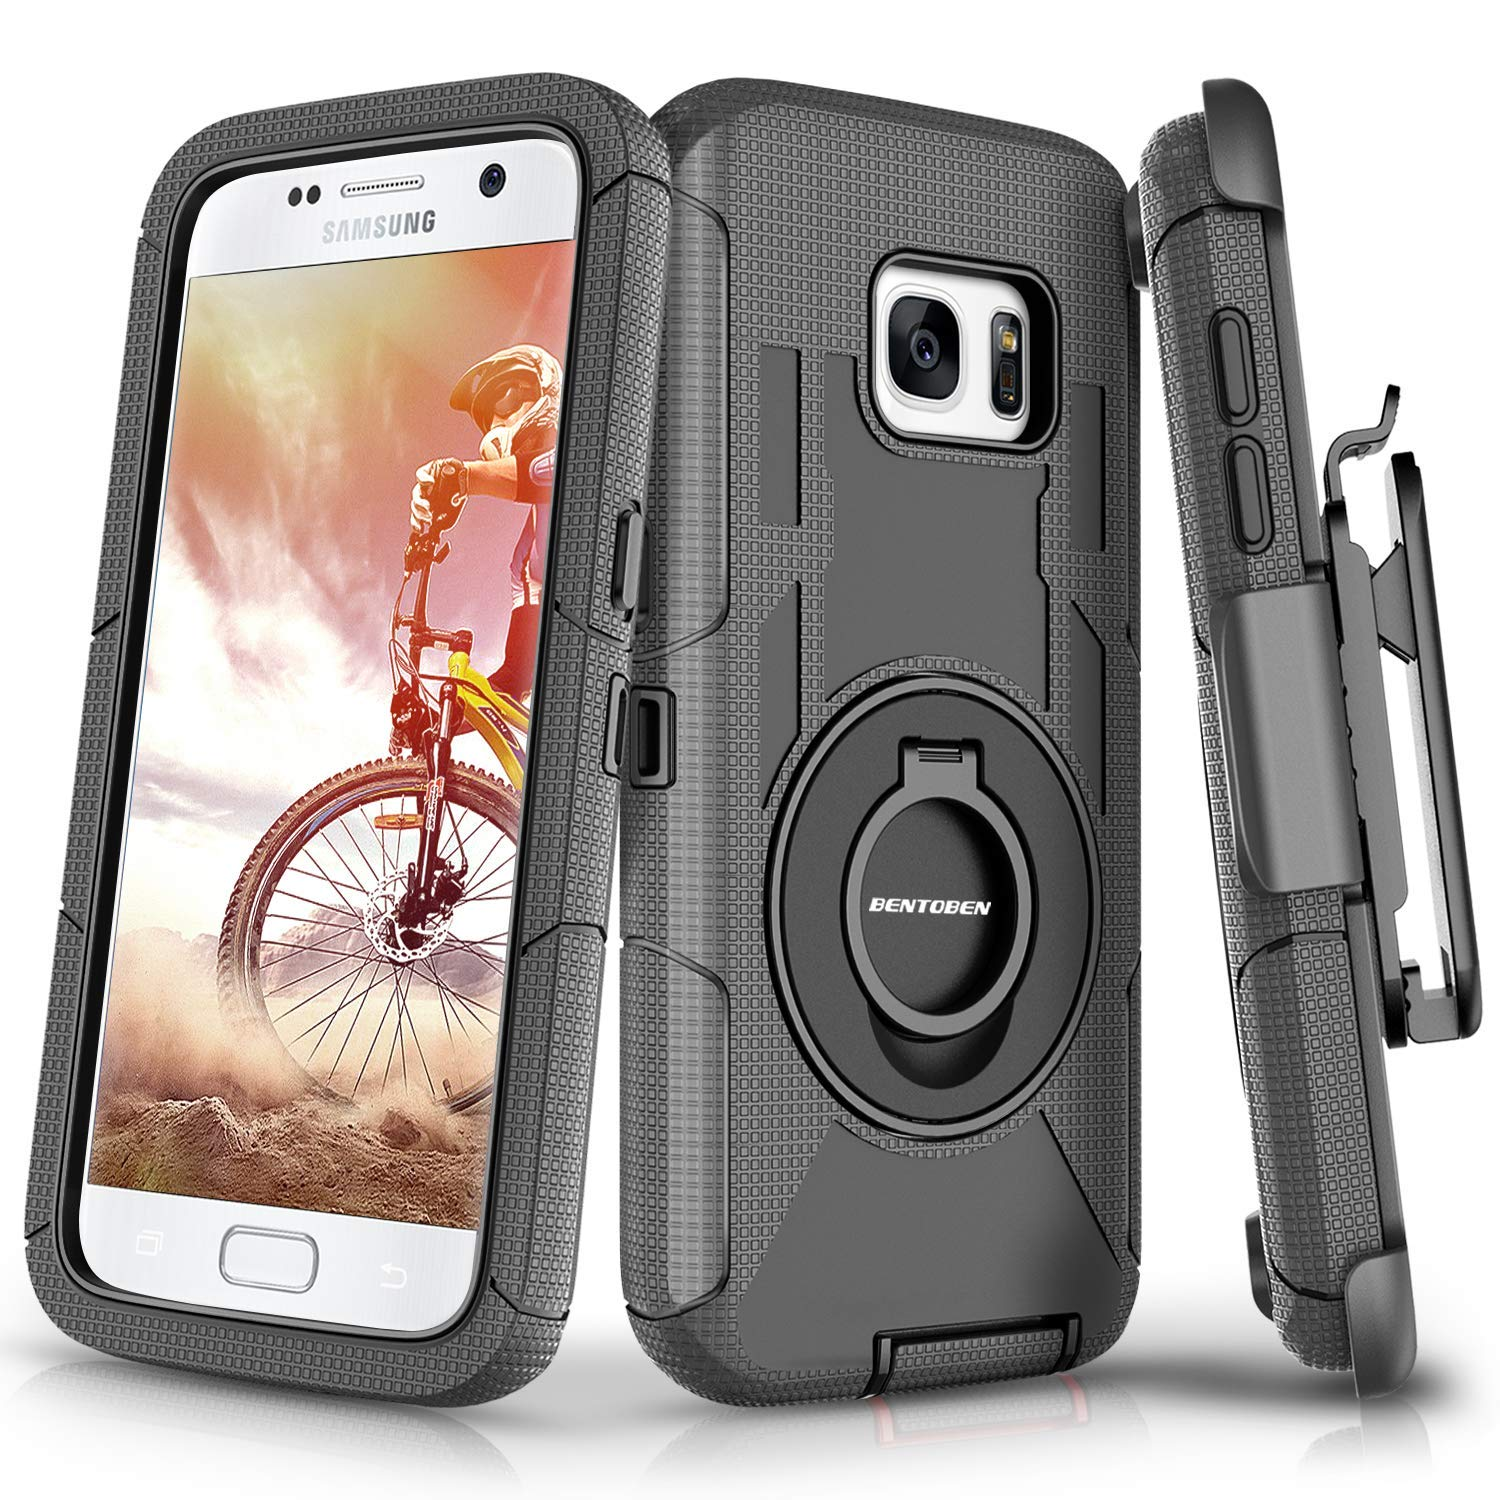 Galaxy S7 Case, S7 Case, BENTOBEN 4in1 Hybrid Shockproof Heavy Duty Rugged Full Body Protective Cover Built-in Rotating Kickstand Swivel Belt Clip Holster Case for Samsung Galaxy S7- Black